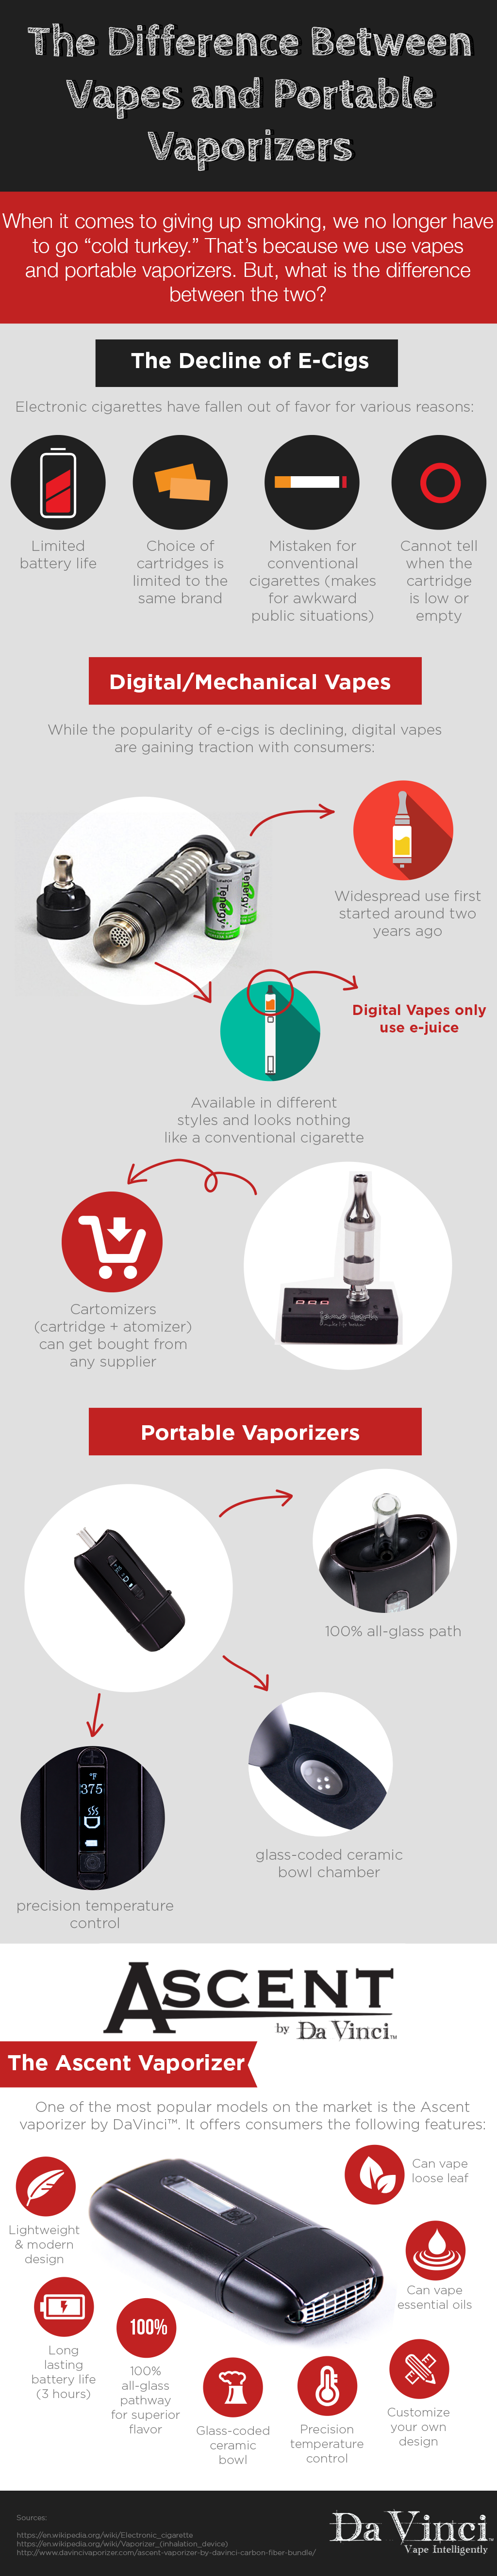 The Difference Between Vapes & Portable Vaporizers